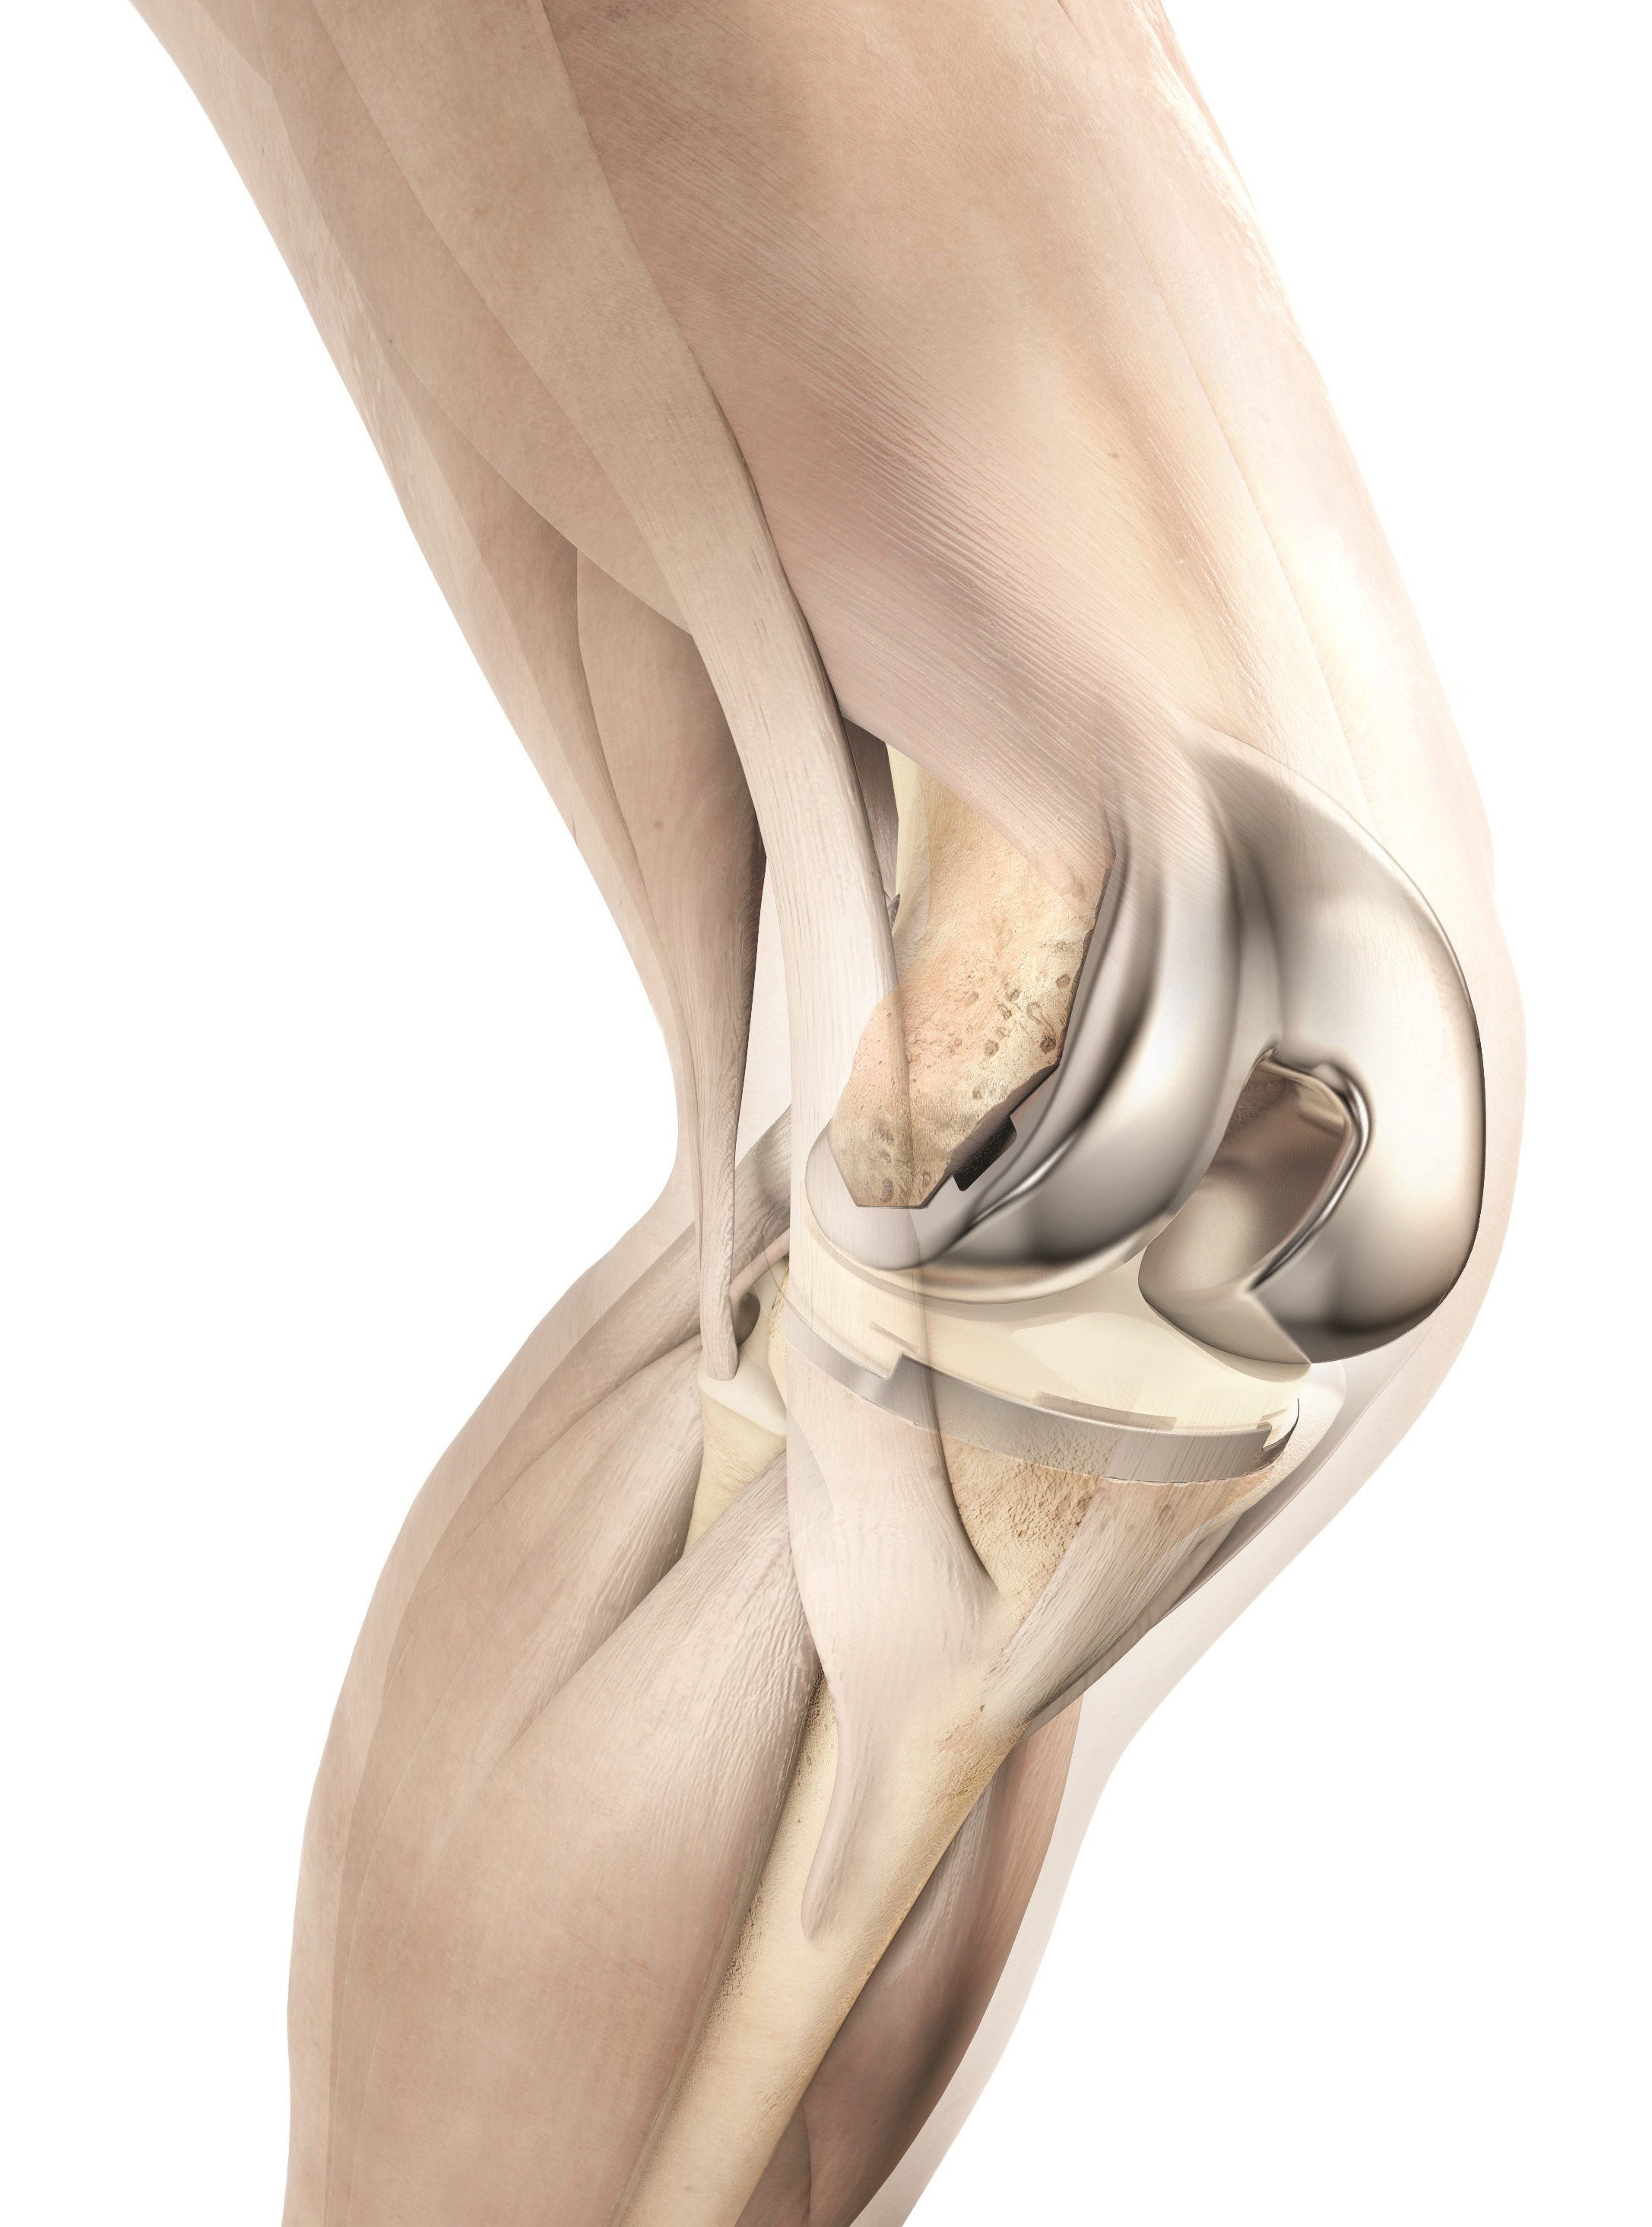 DePuy Synthes knee system shown to be beneficial for economics and ...